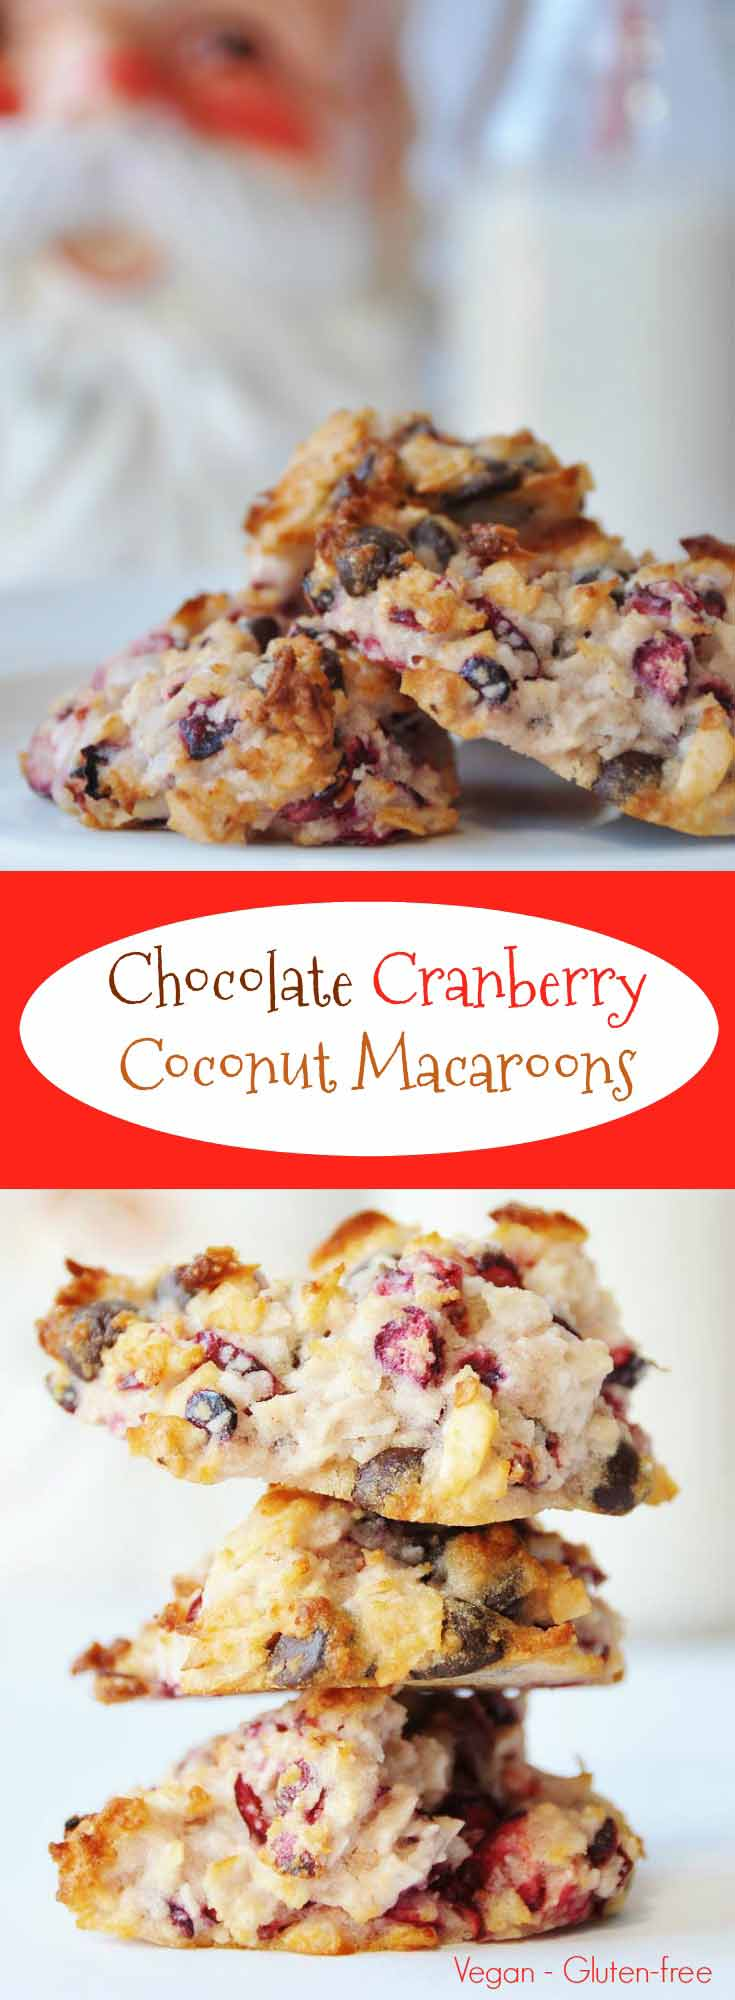 Gluten-free and vegan chocolate cranberry coconut macaroons cookie recipe! Perfect for the holidays! www.veganosity.com